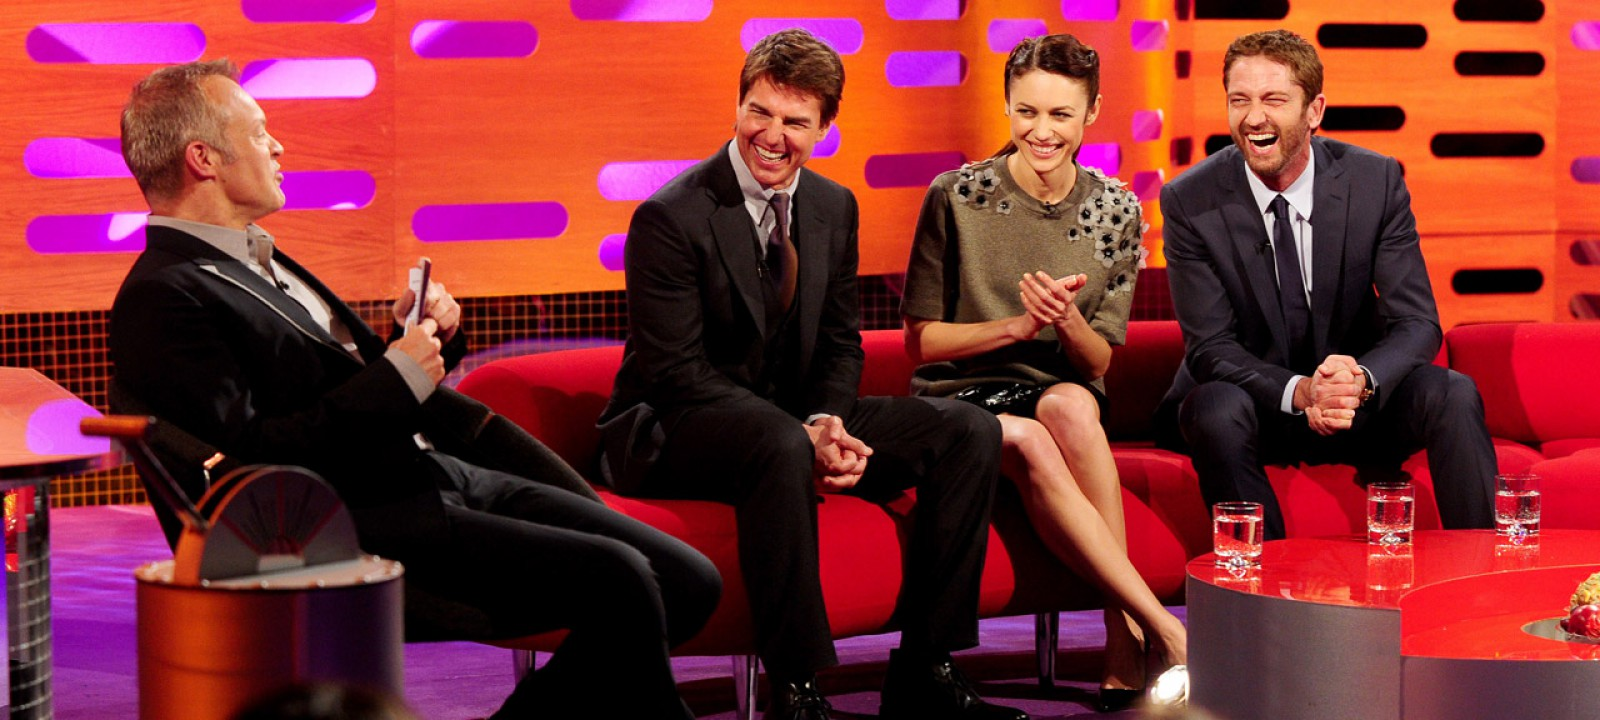 grahamnorton_photo_s13_e1_5